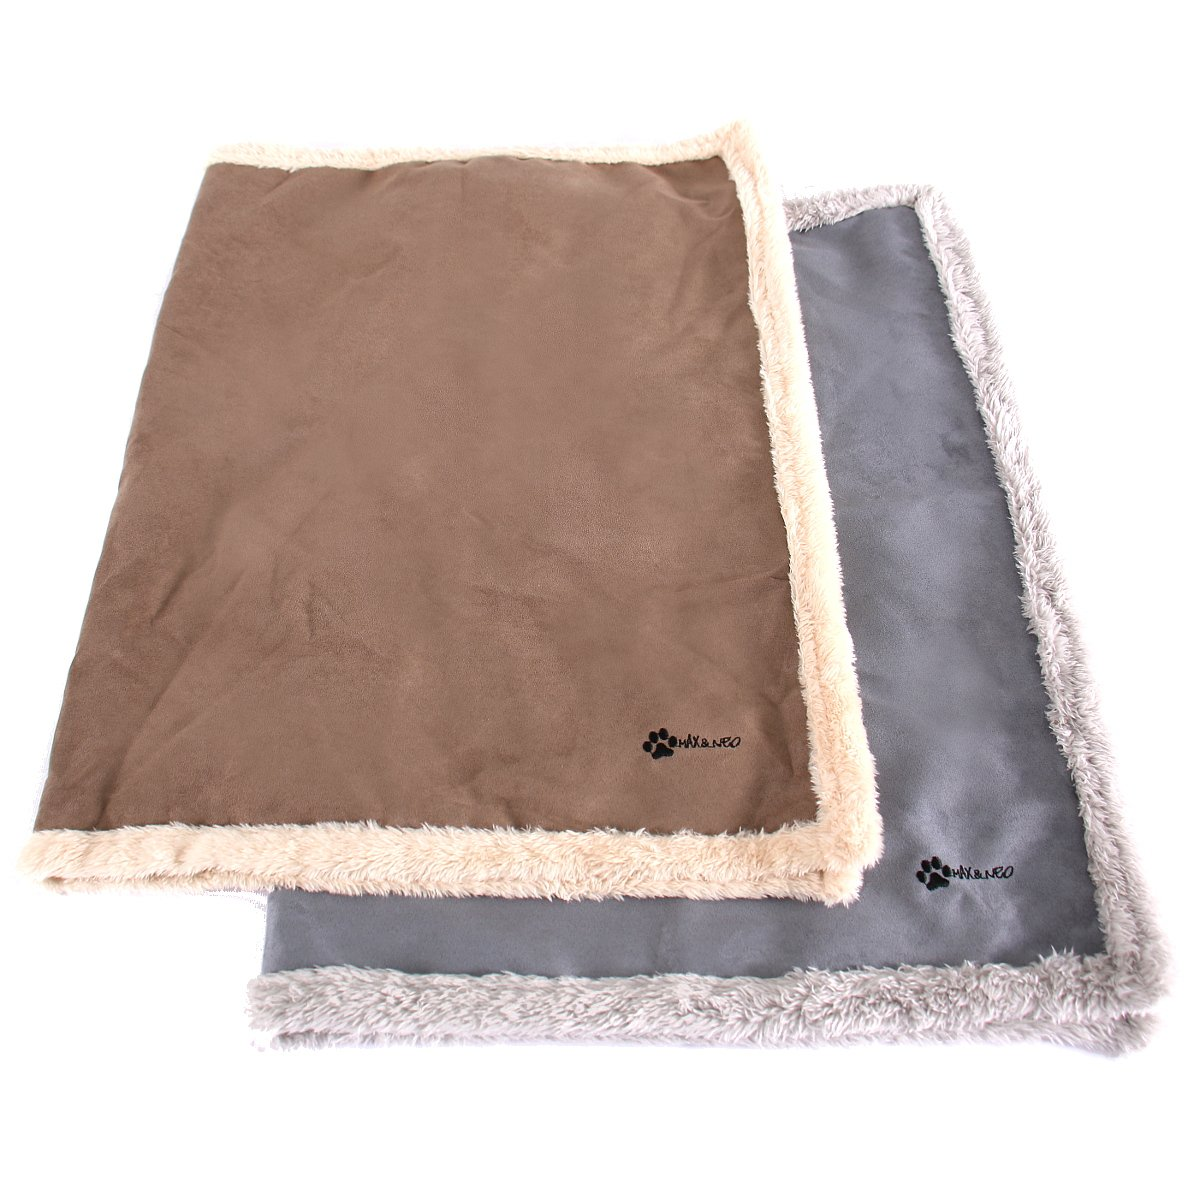 Max and Neo Faux Suede Fleece Dog Blanket - One Side Soft Furry Fleece, One Side Faux Suede - We Donate a Blanket to a Dog Rescue for Every Blanket Sold (LARGE, BROWN)